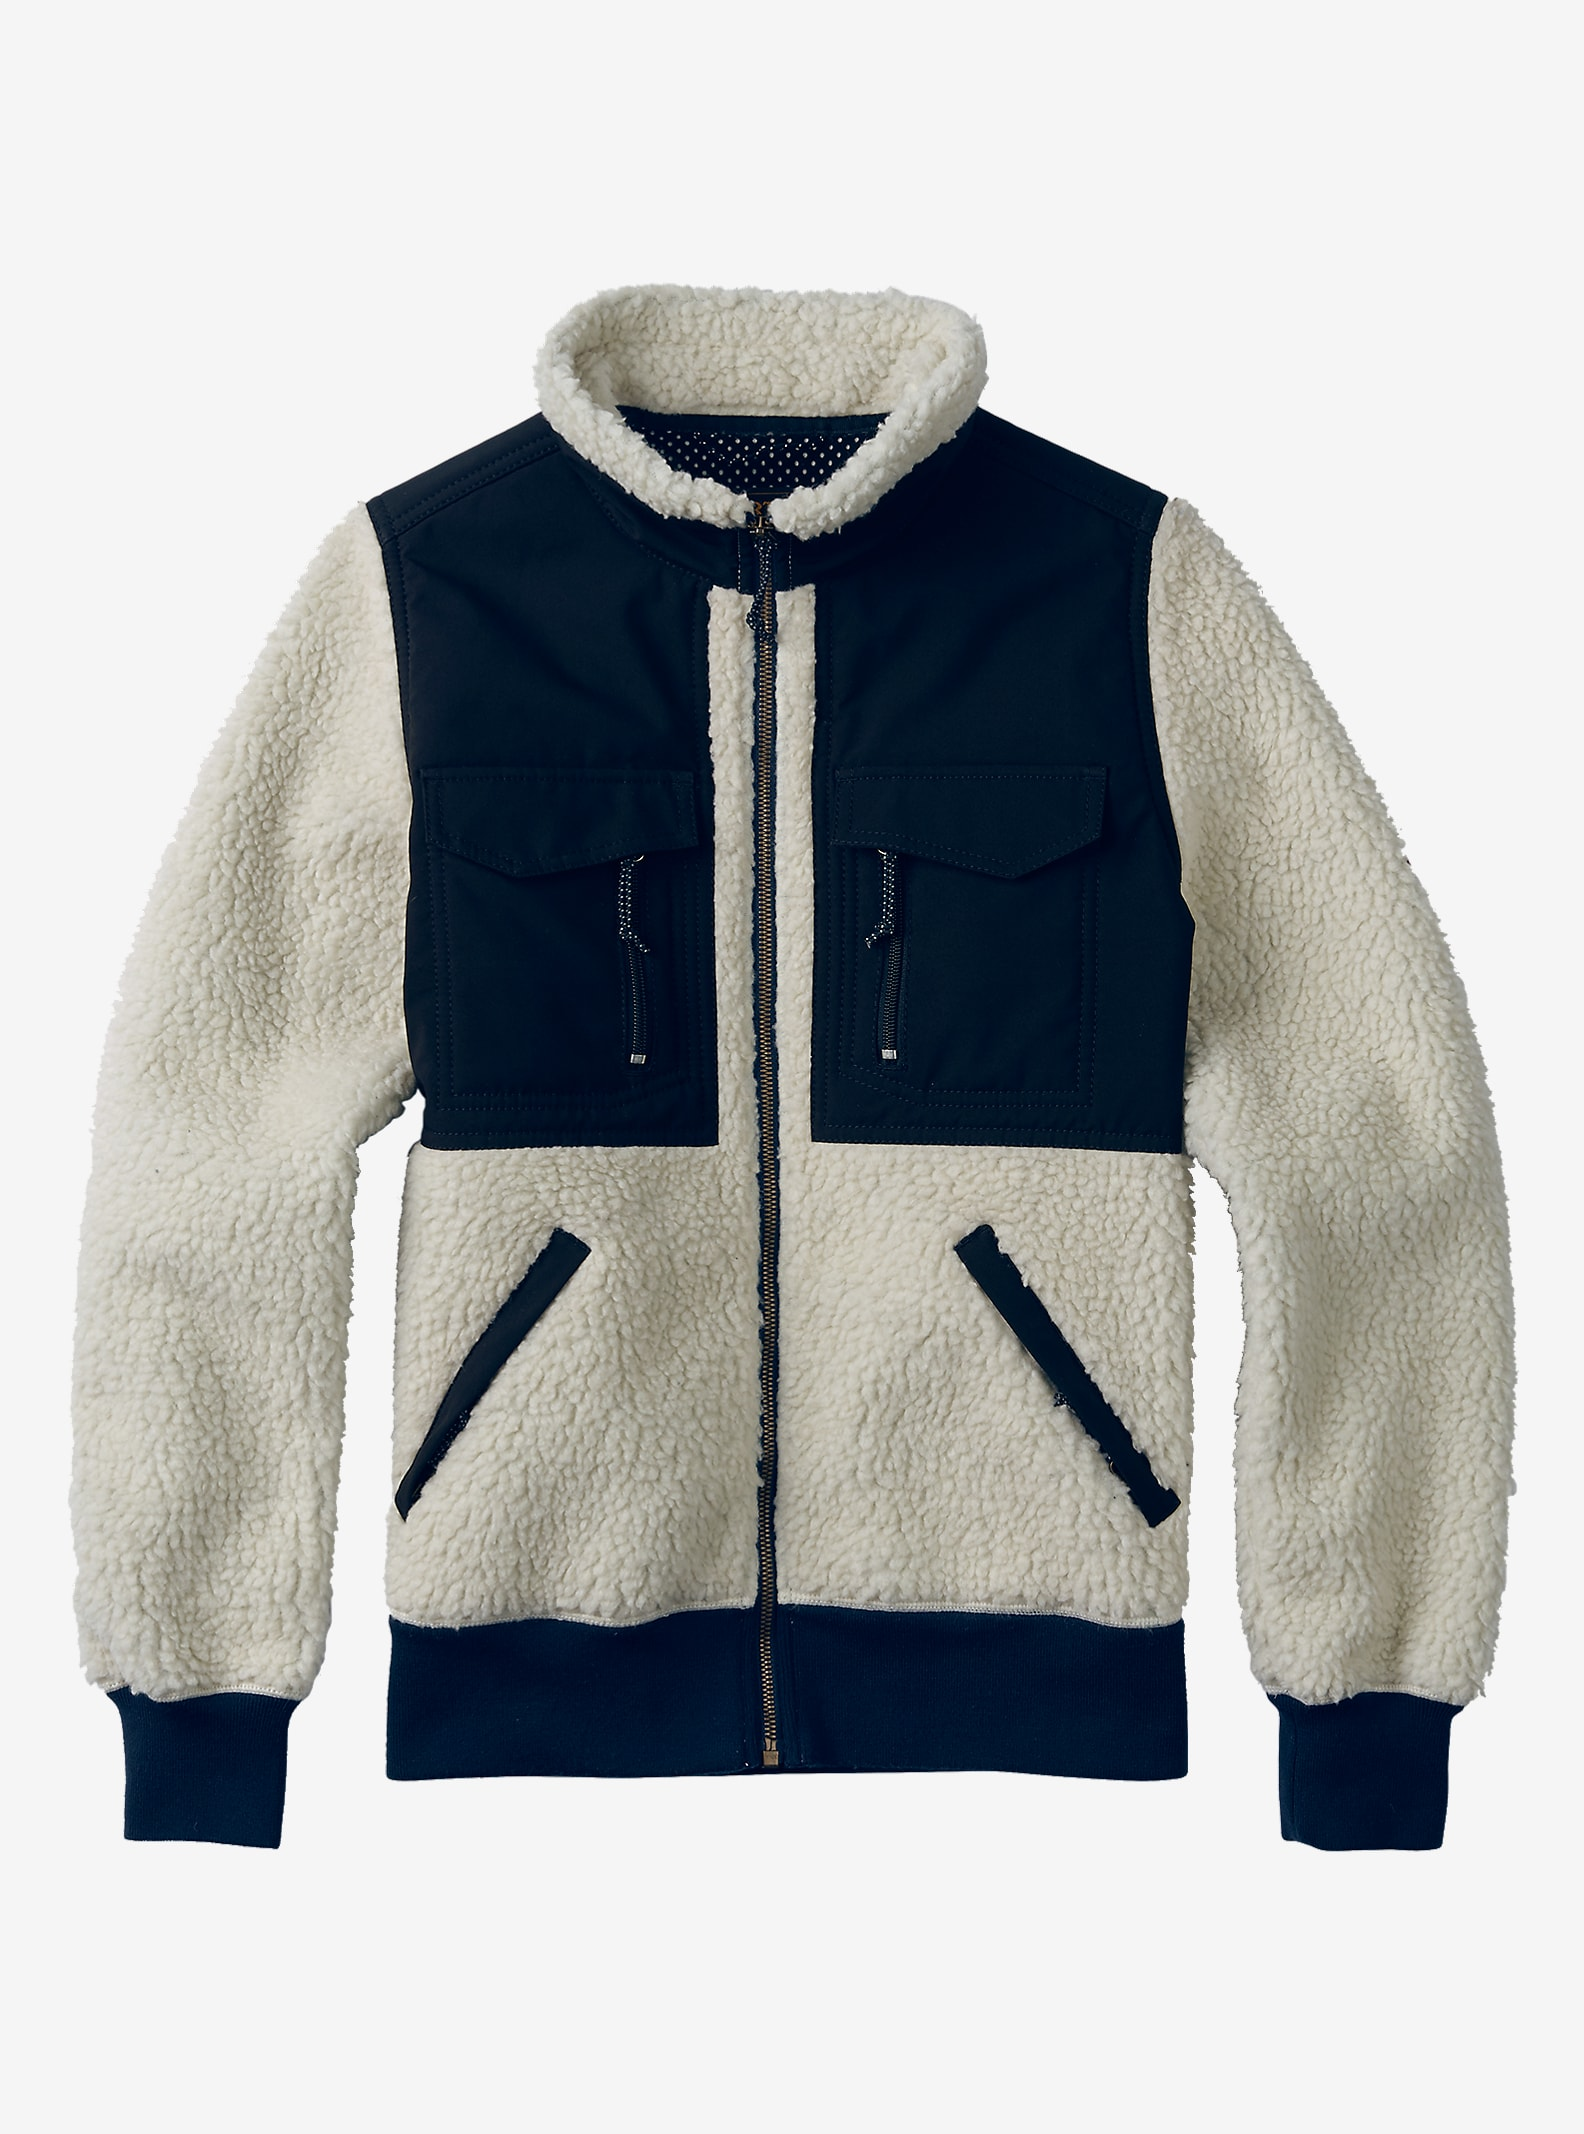 Burton Bolden Full-Zip Fleece shown in Canvas